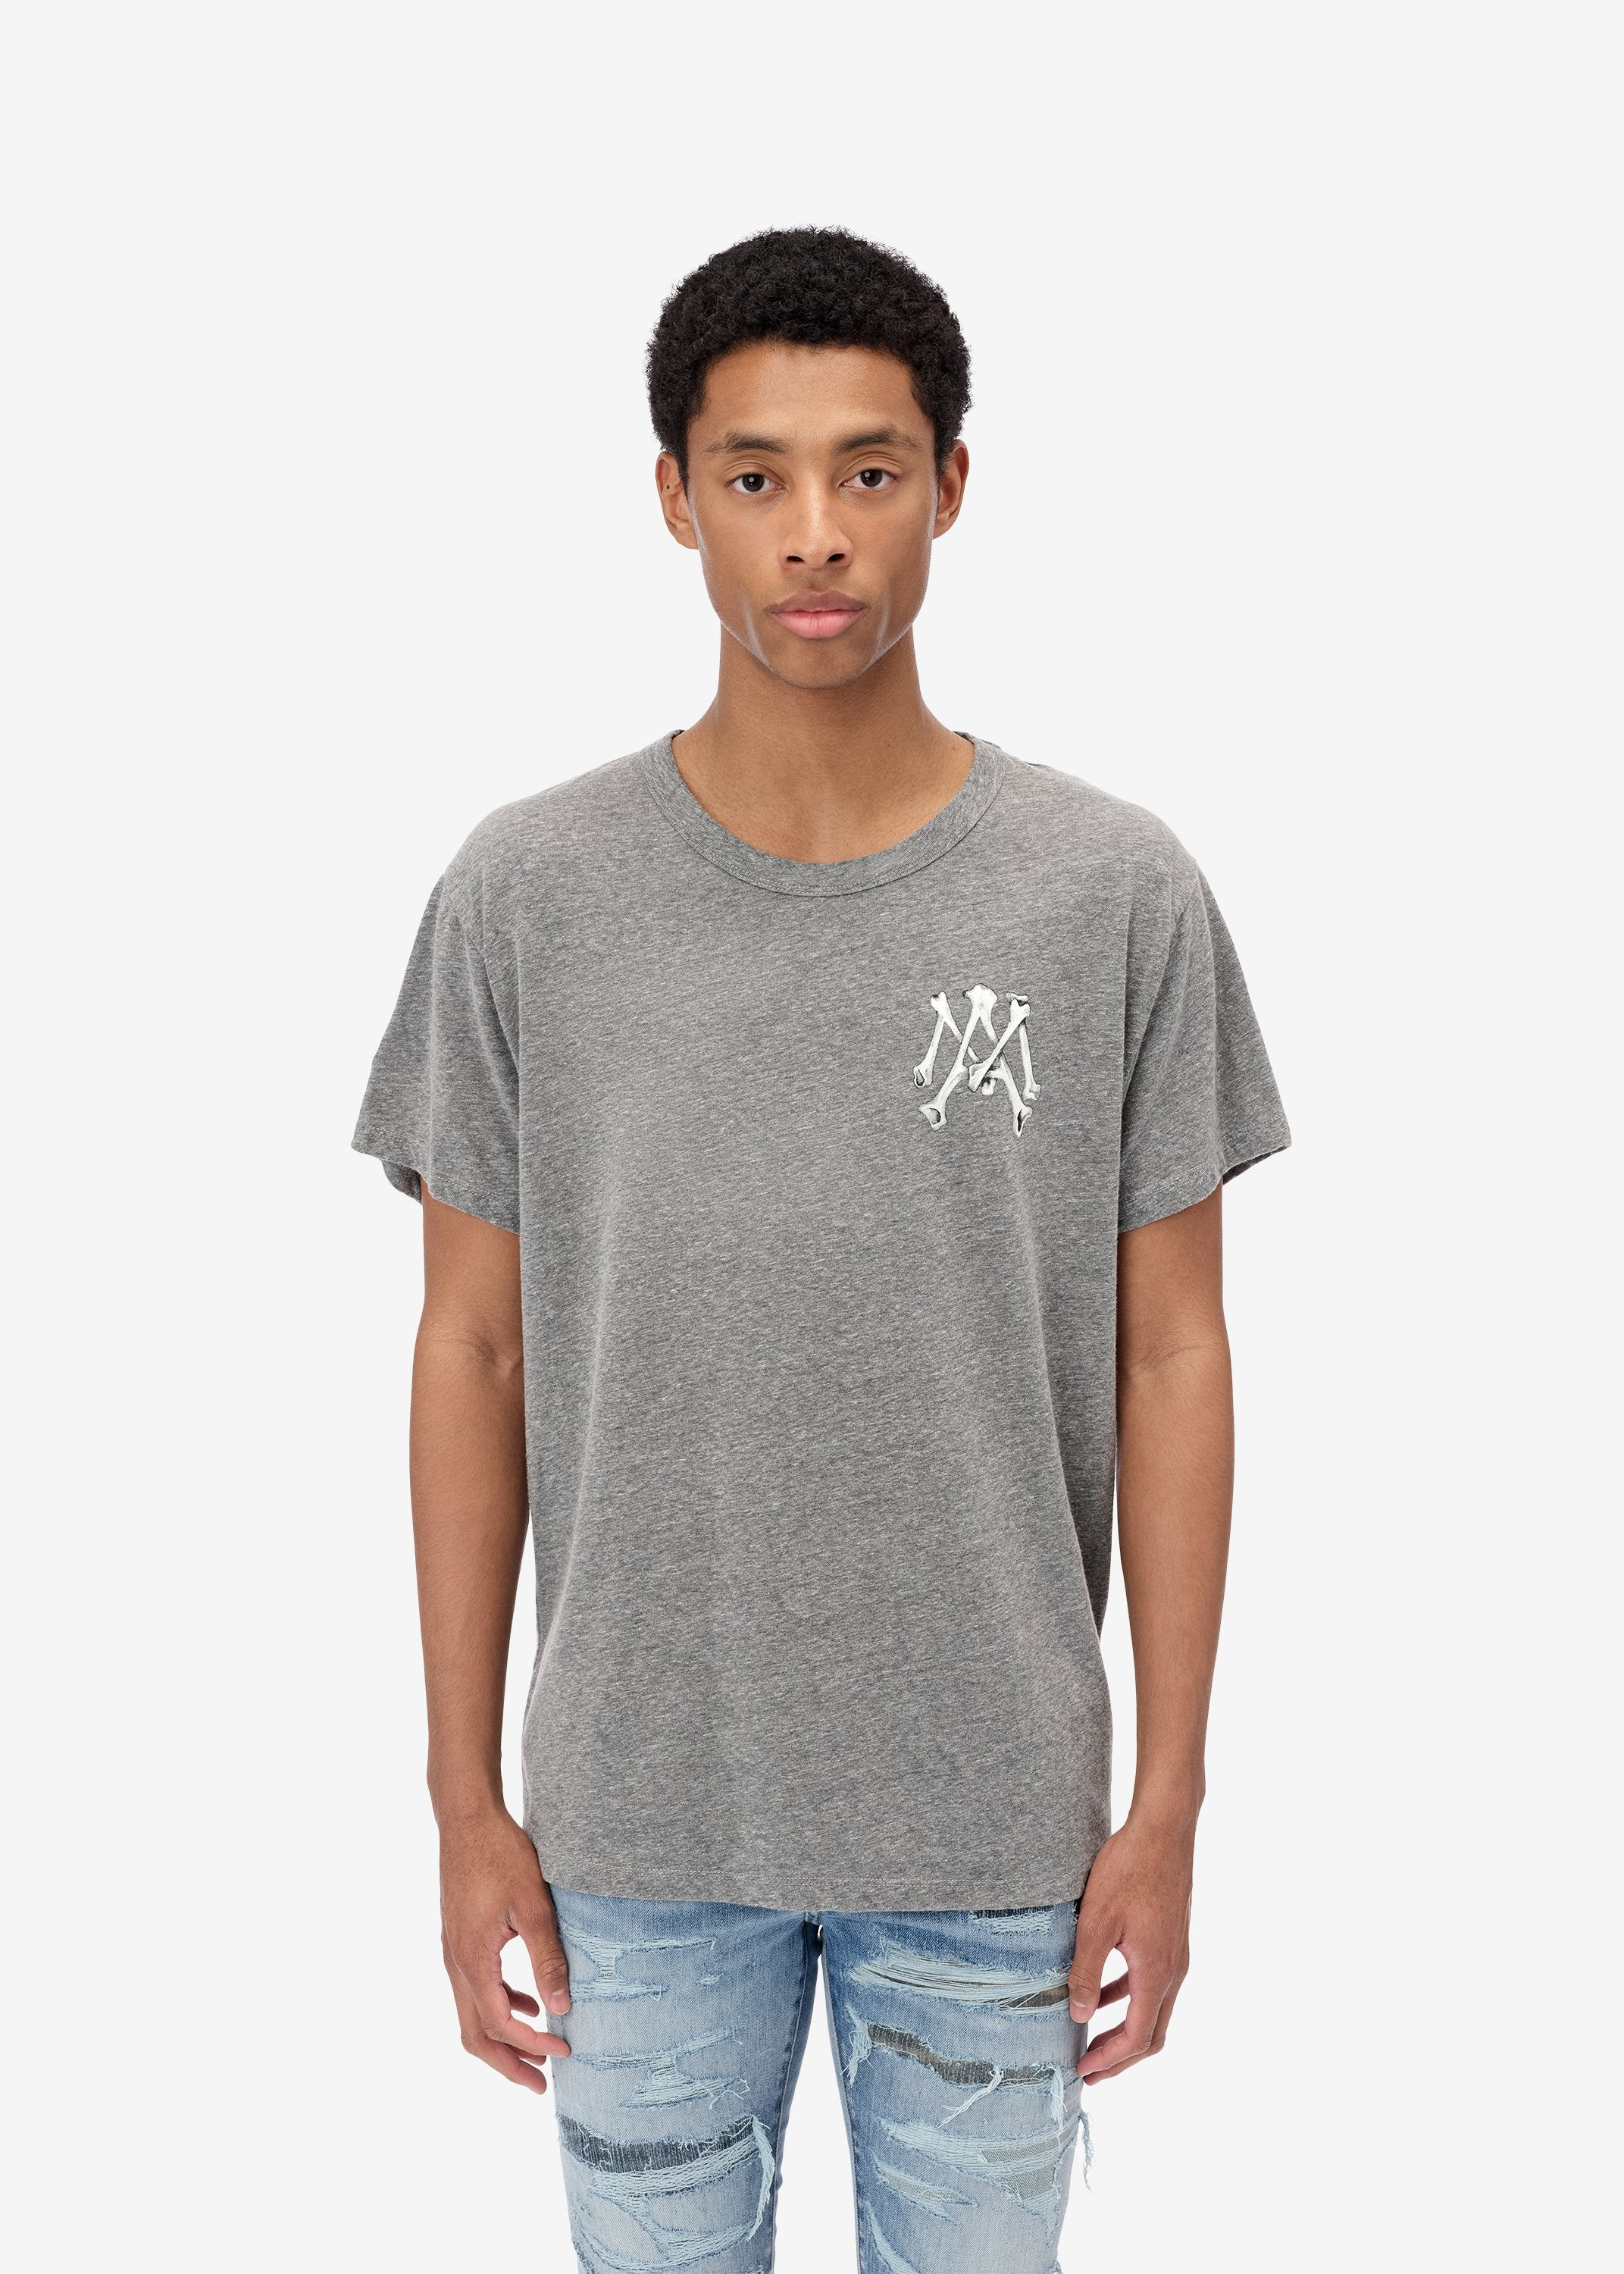 amiri-bones-m-a-tee-heather-grey-image-2